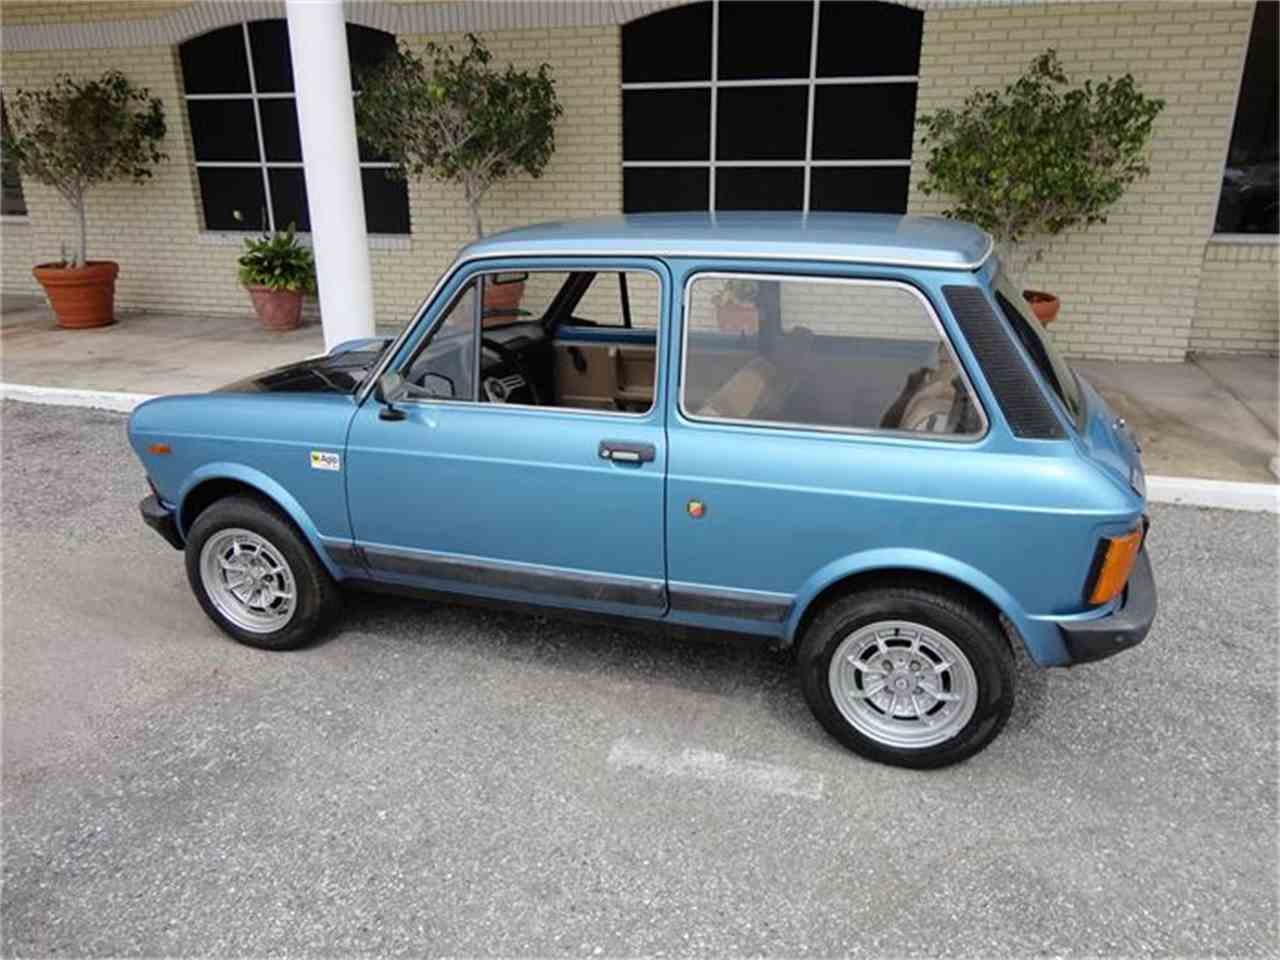 Large Picture of '79 Autobianchi Bianchina Panoramica located in Florida - $13,500.00 - 5BC1